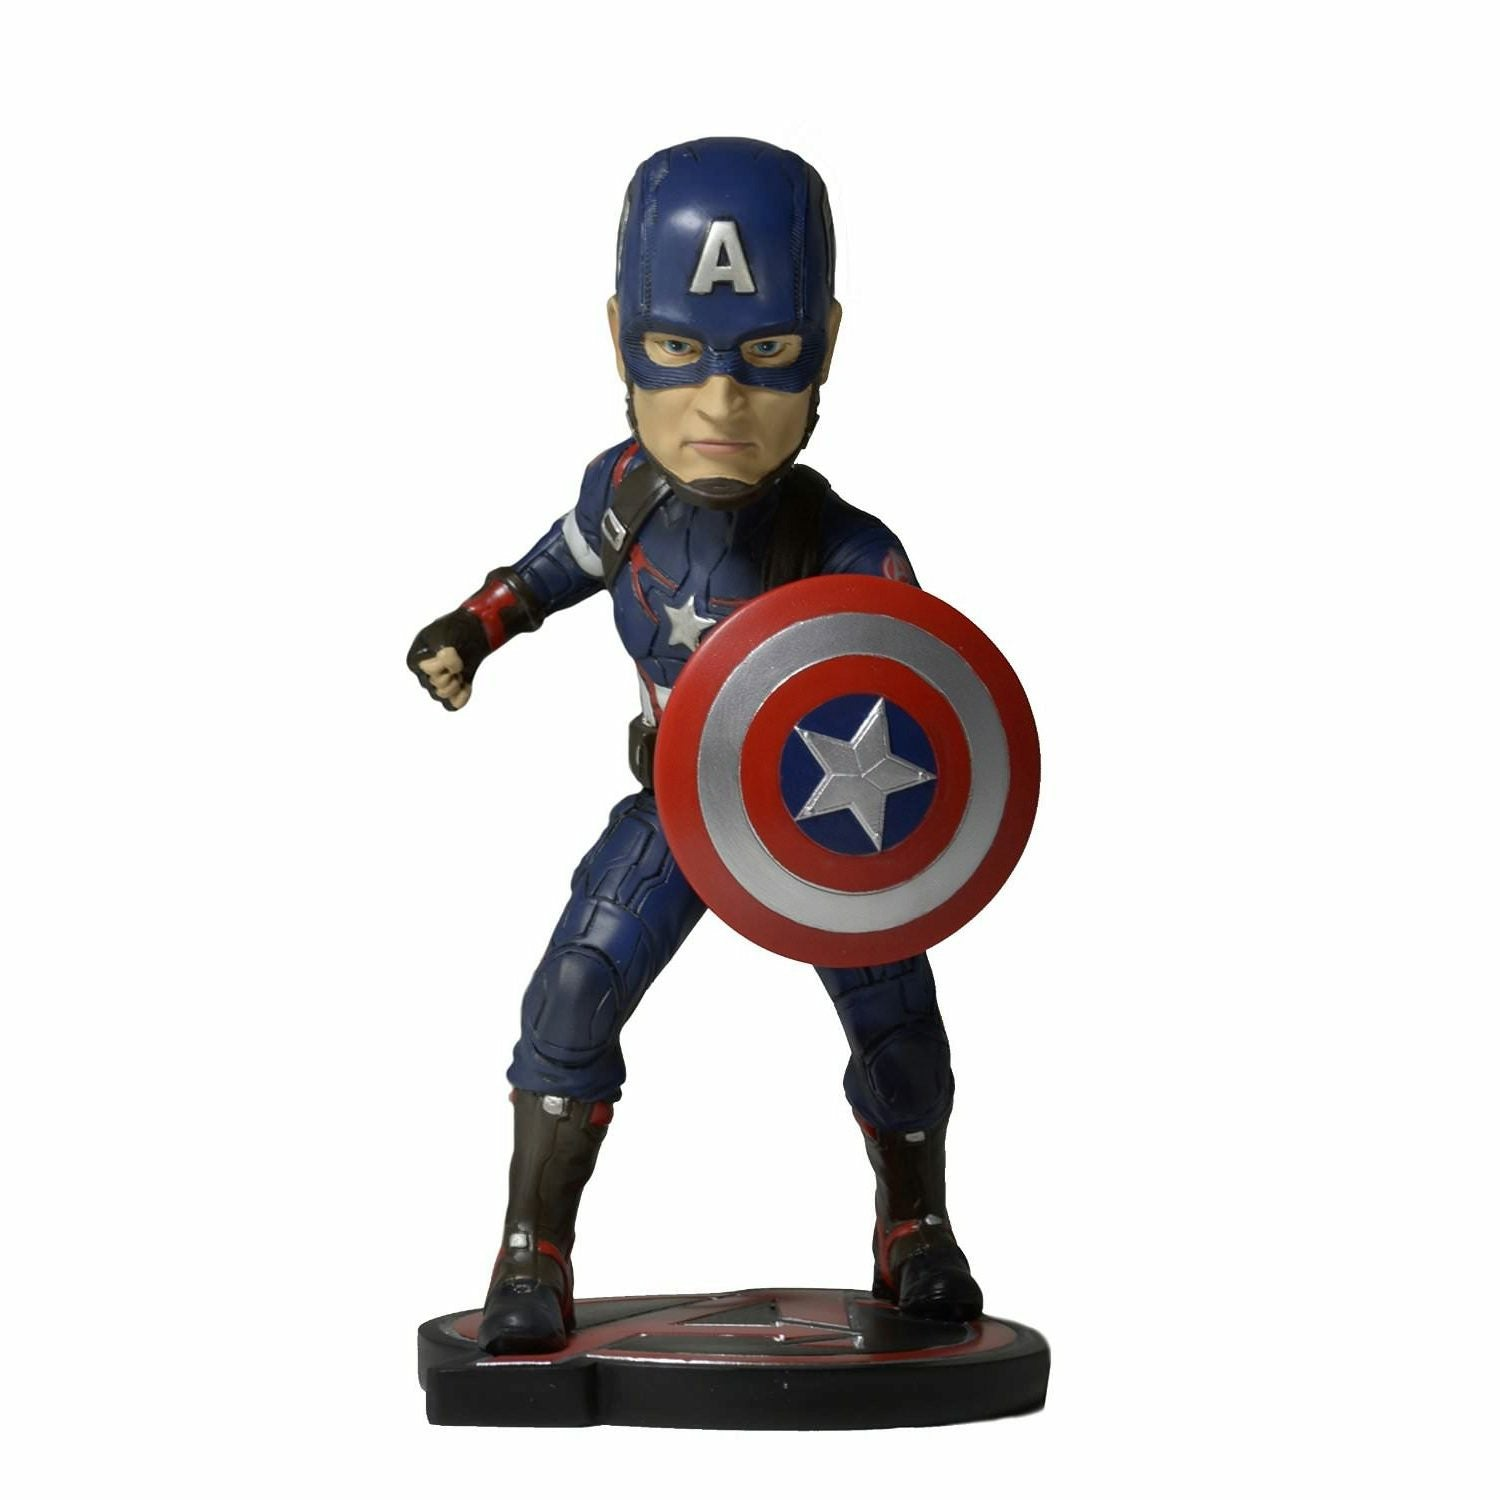 Neca Marvel Avengers Age of Ultron Captain America Head Knocker